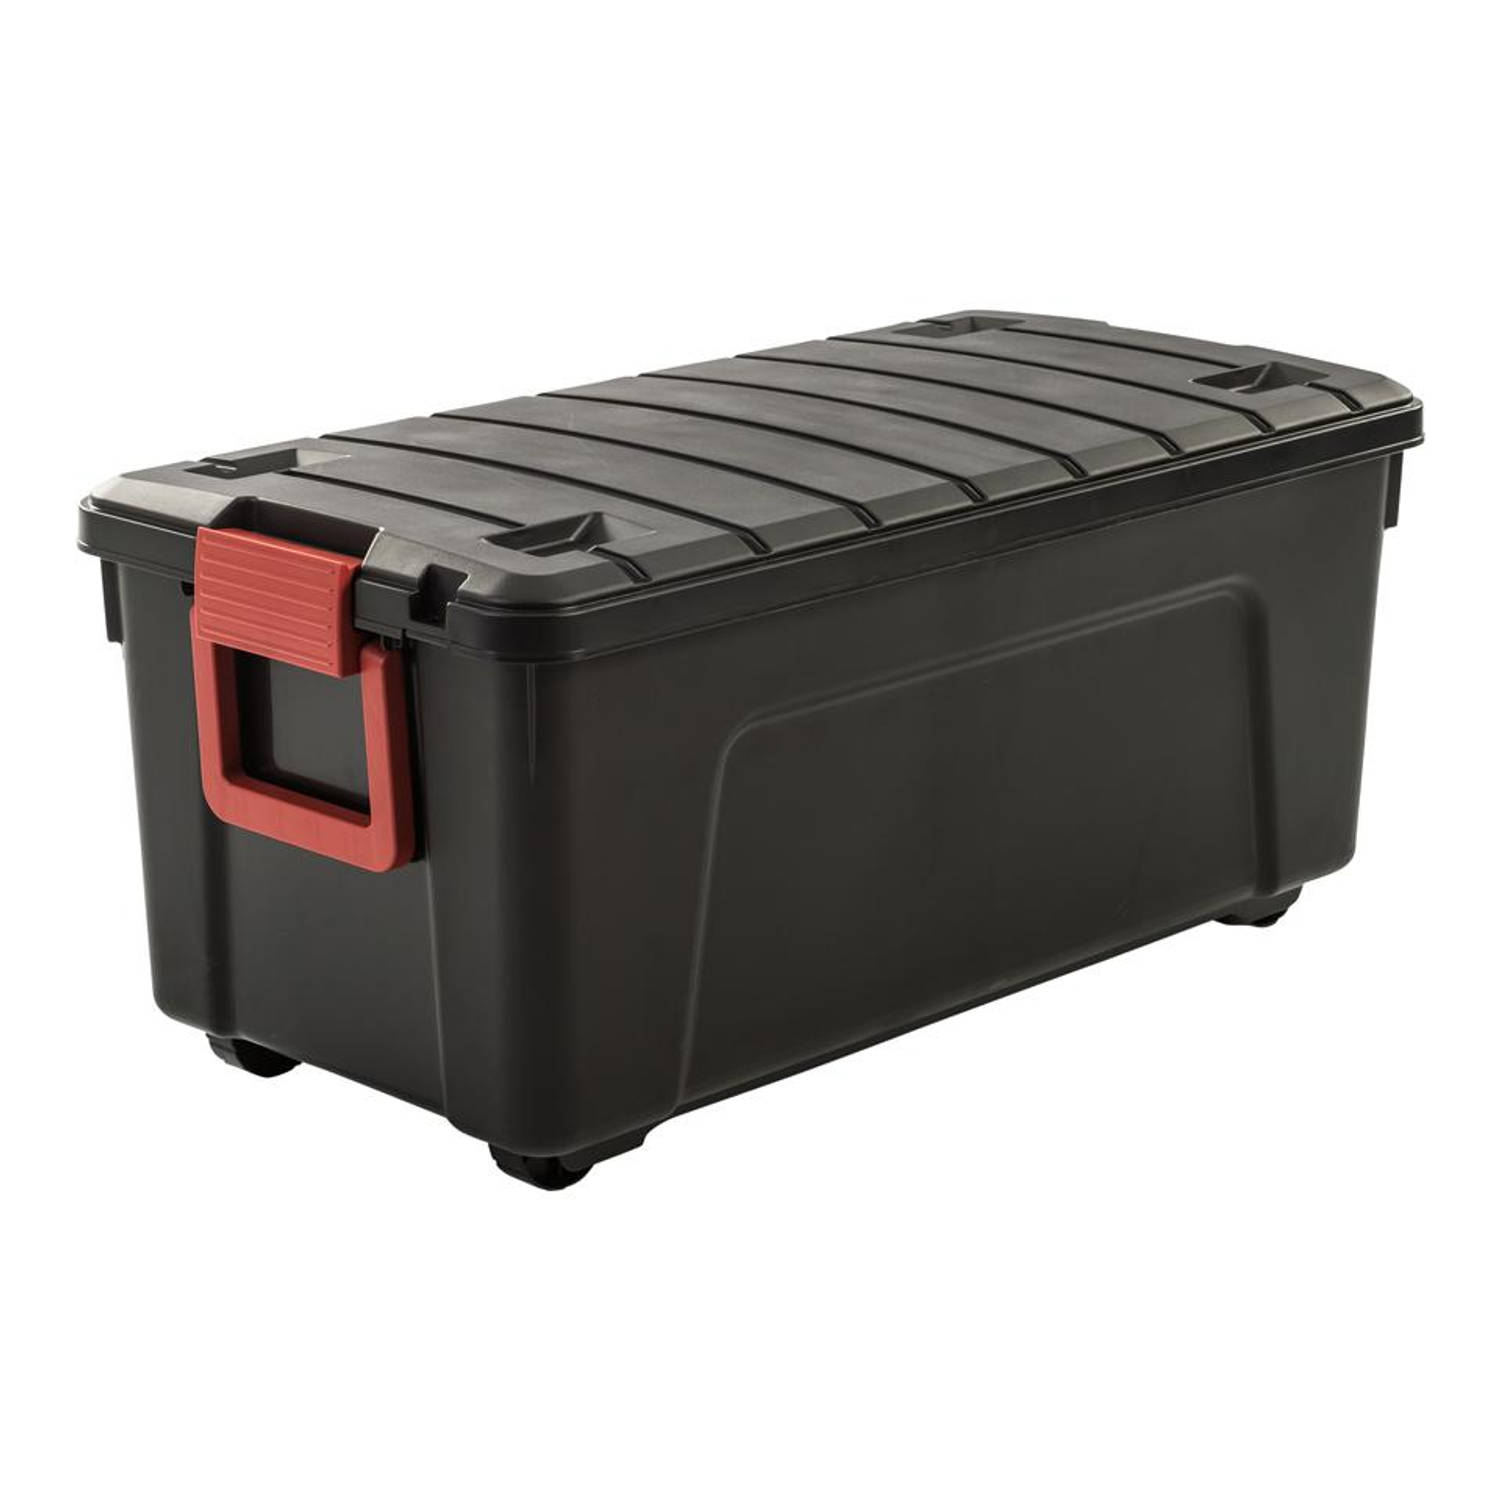 Iris Store It All opbergbox 110 liter zwart rood